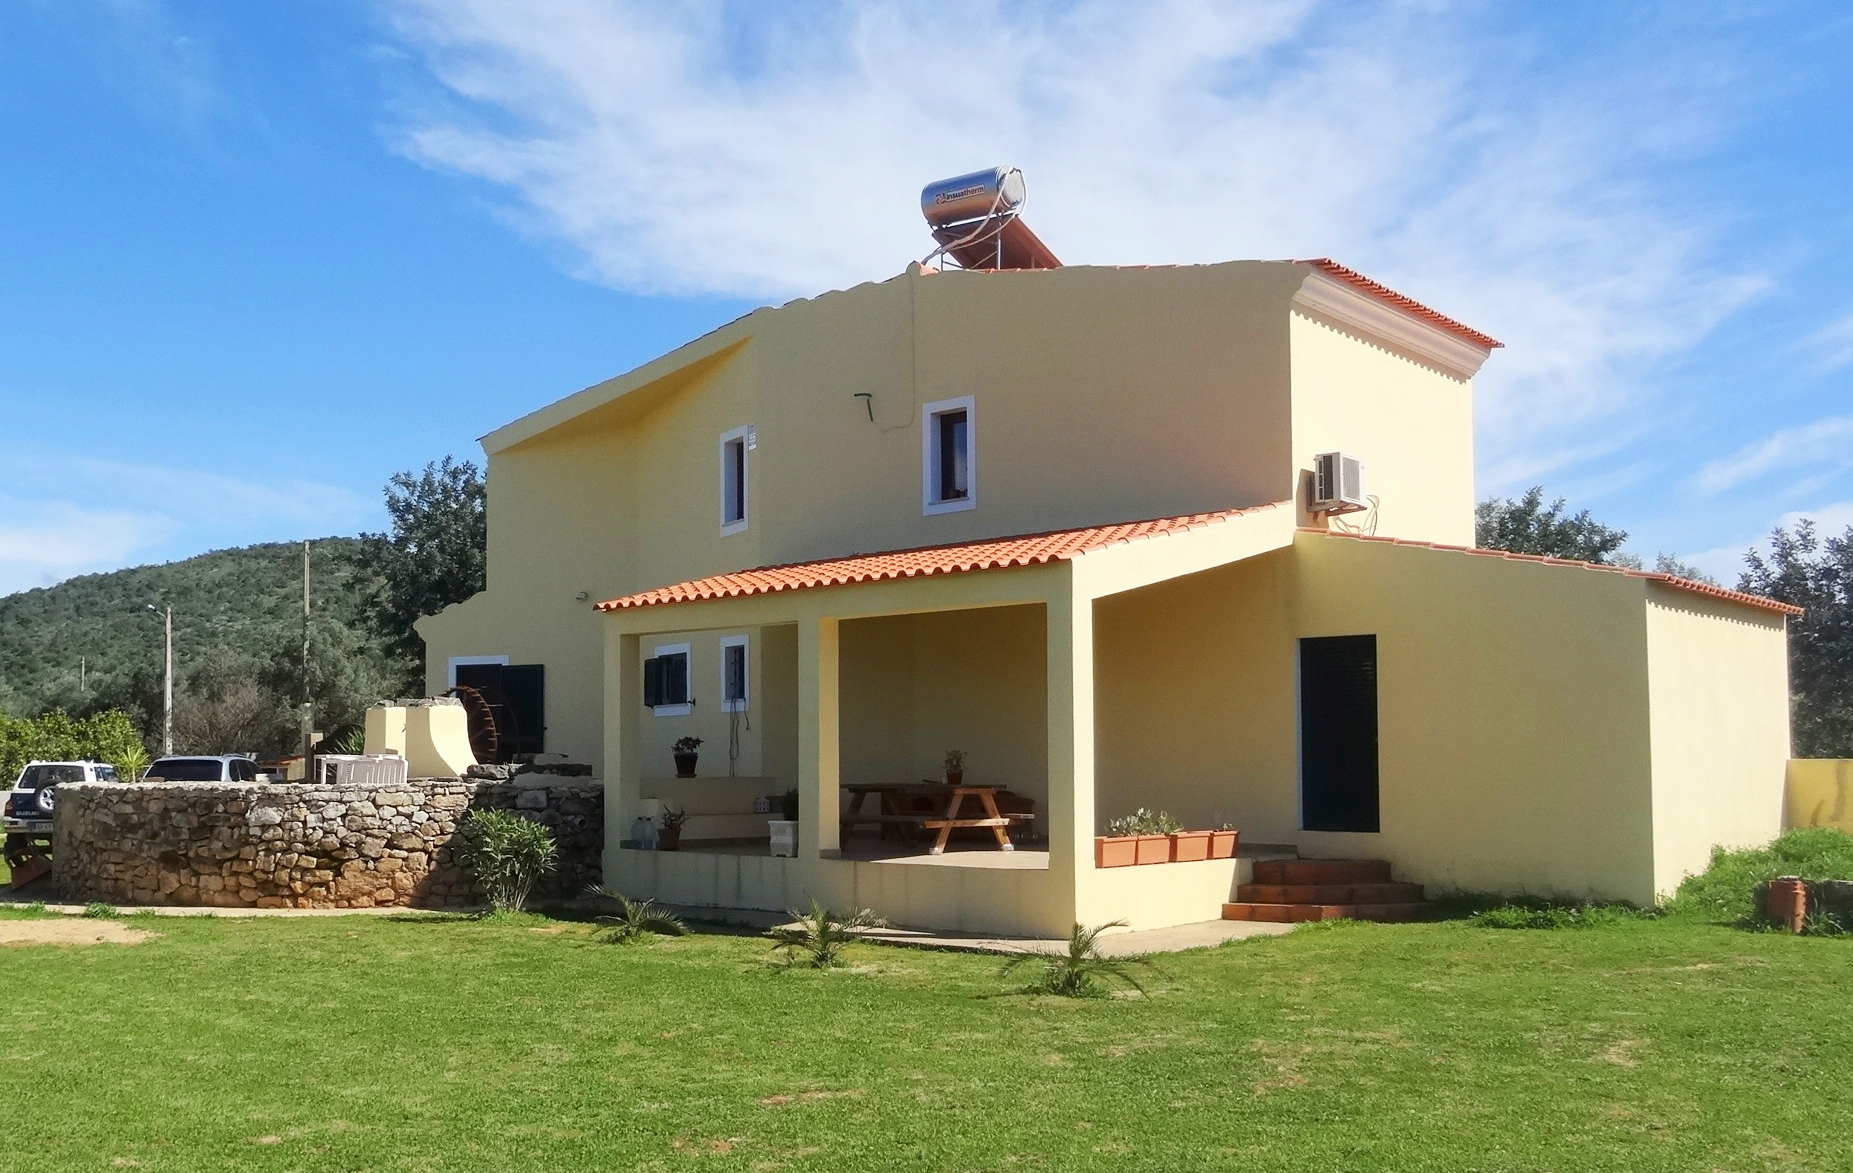 3 Bedroom House in the Countryside with Large Plot near Paderne, Albufeira | VM794